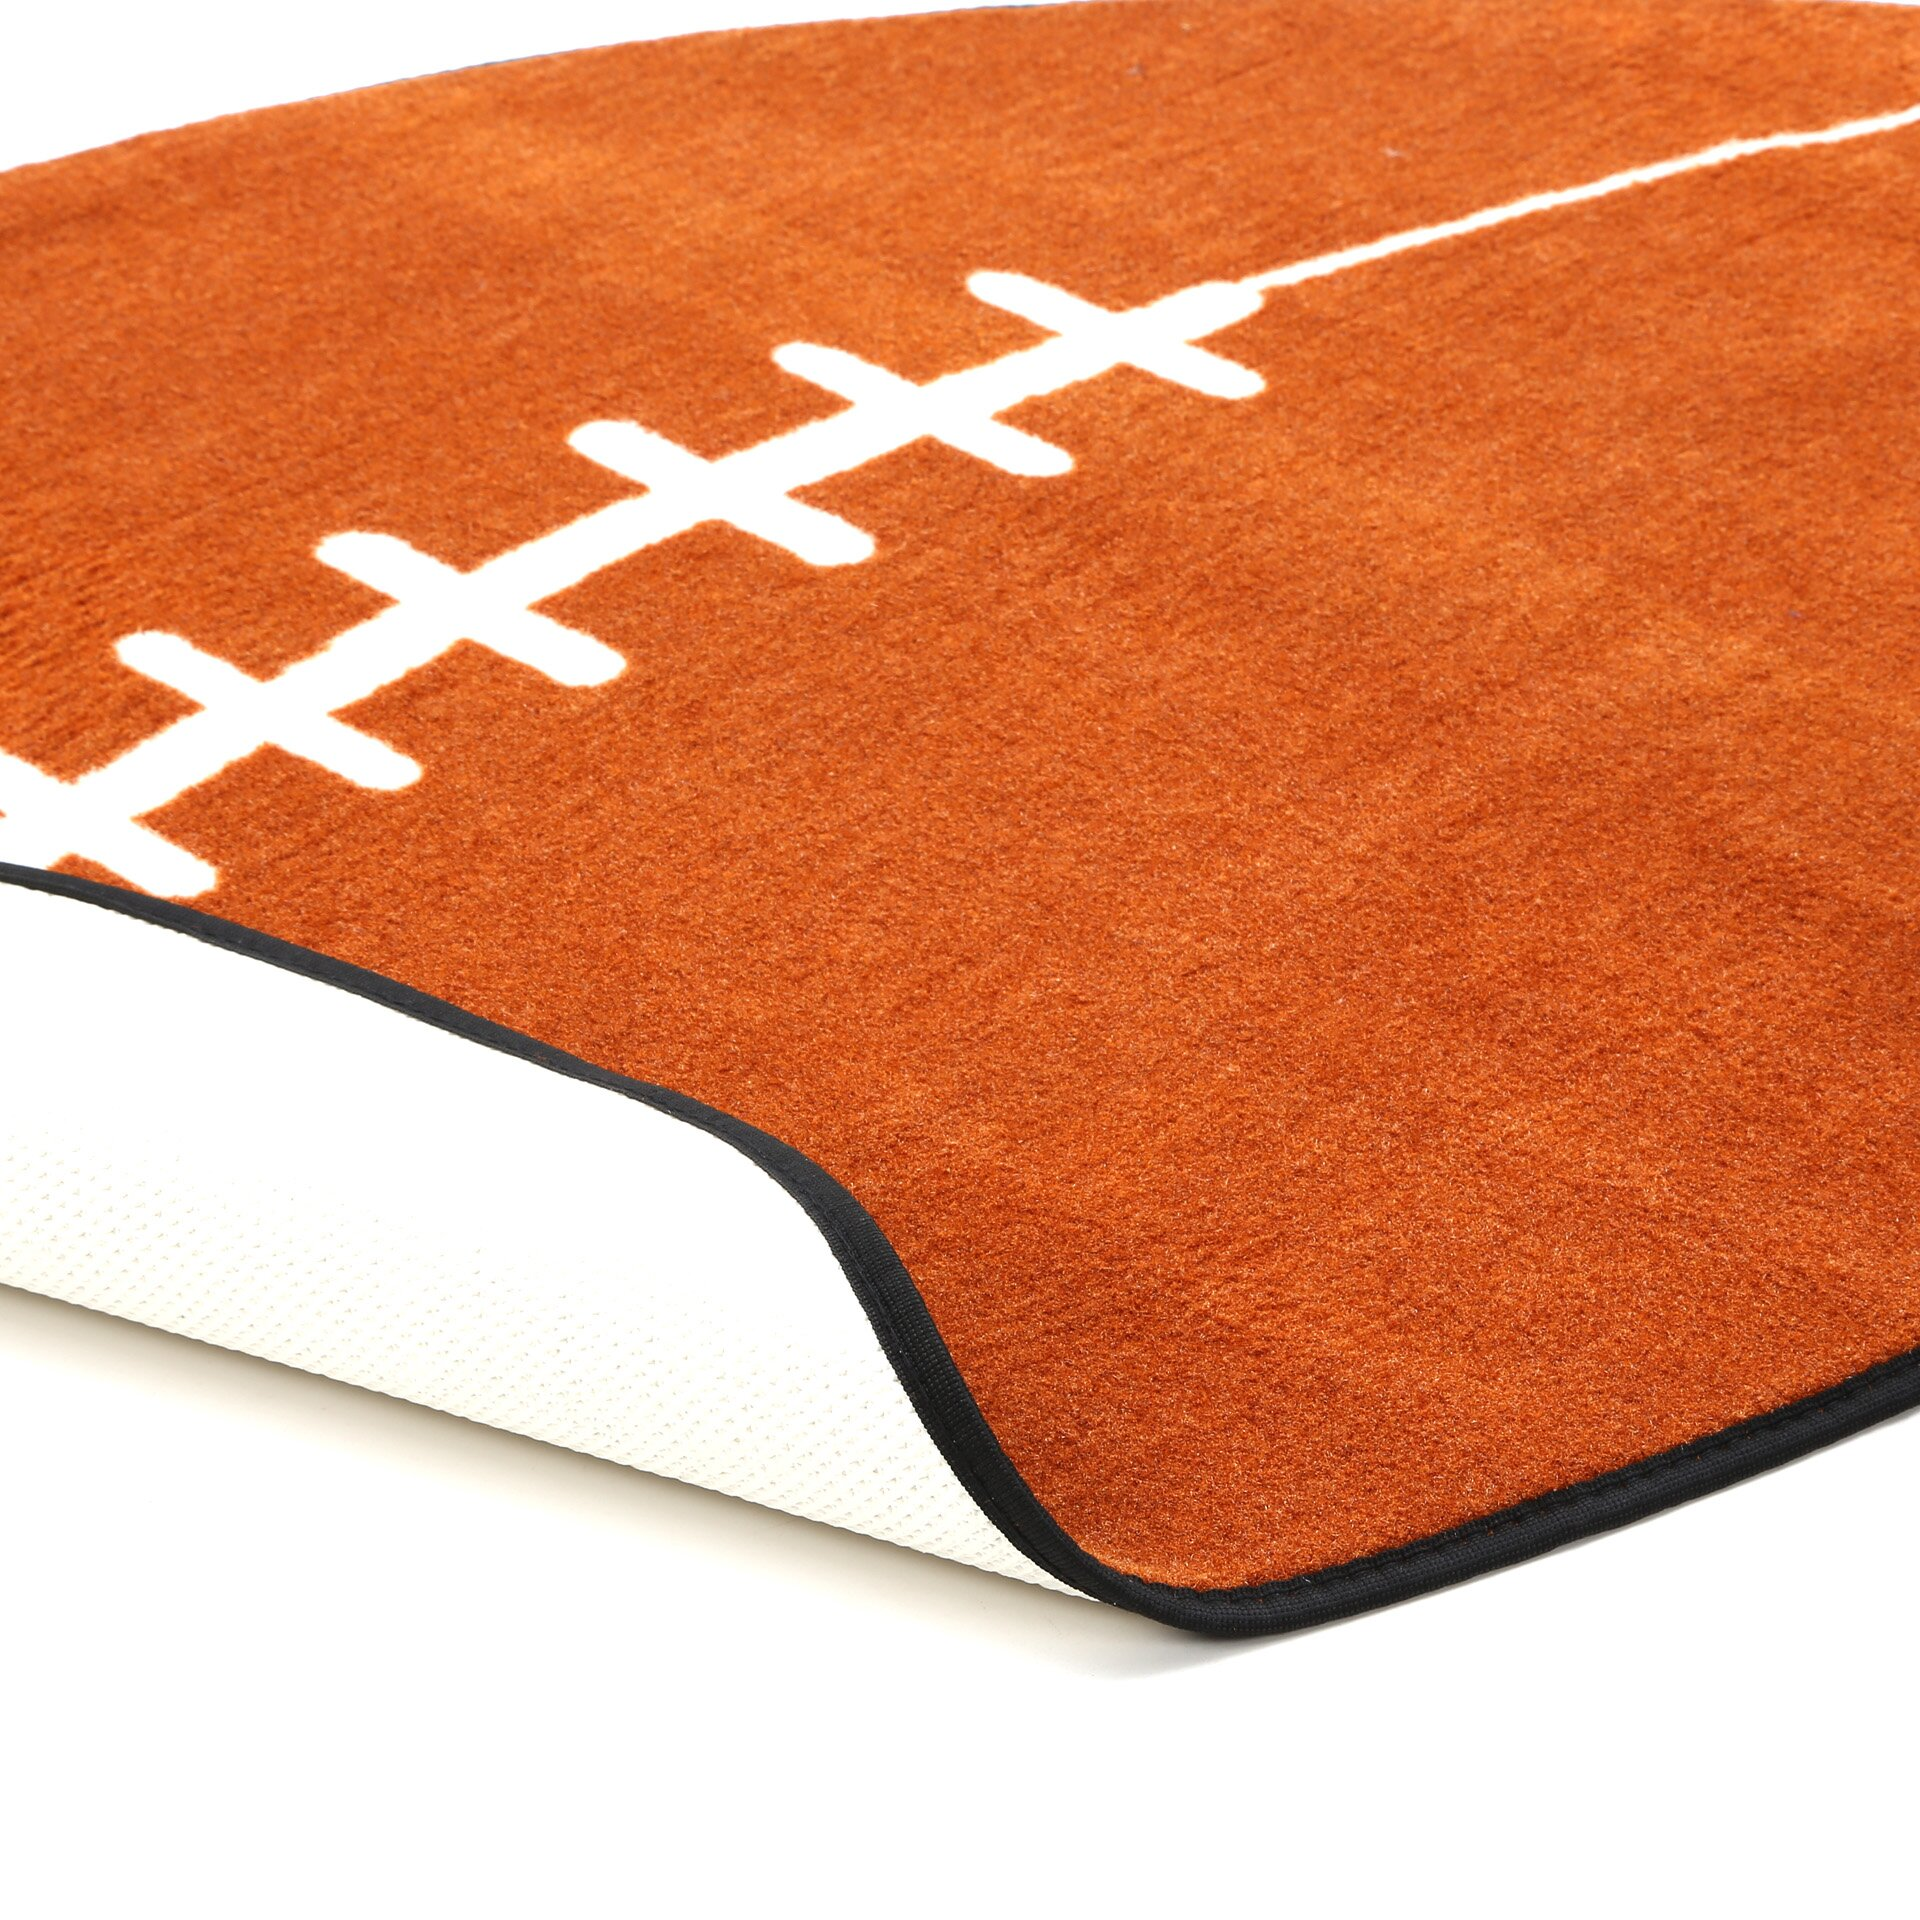 Sports Area Rugs Home Design Ideas and